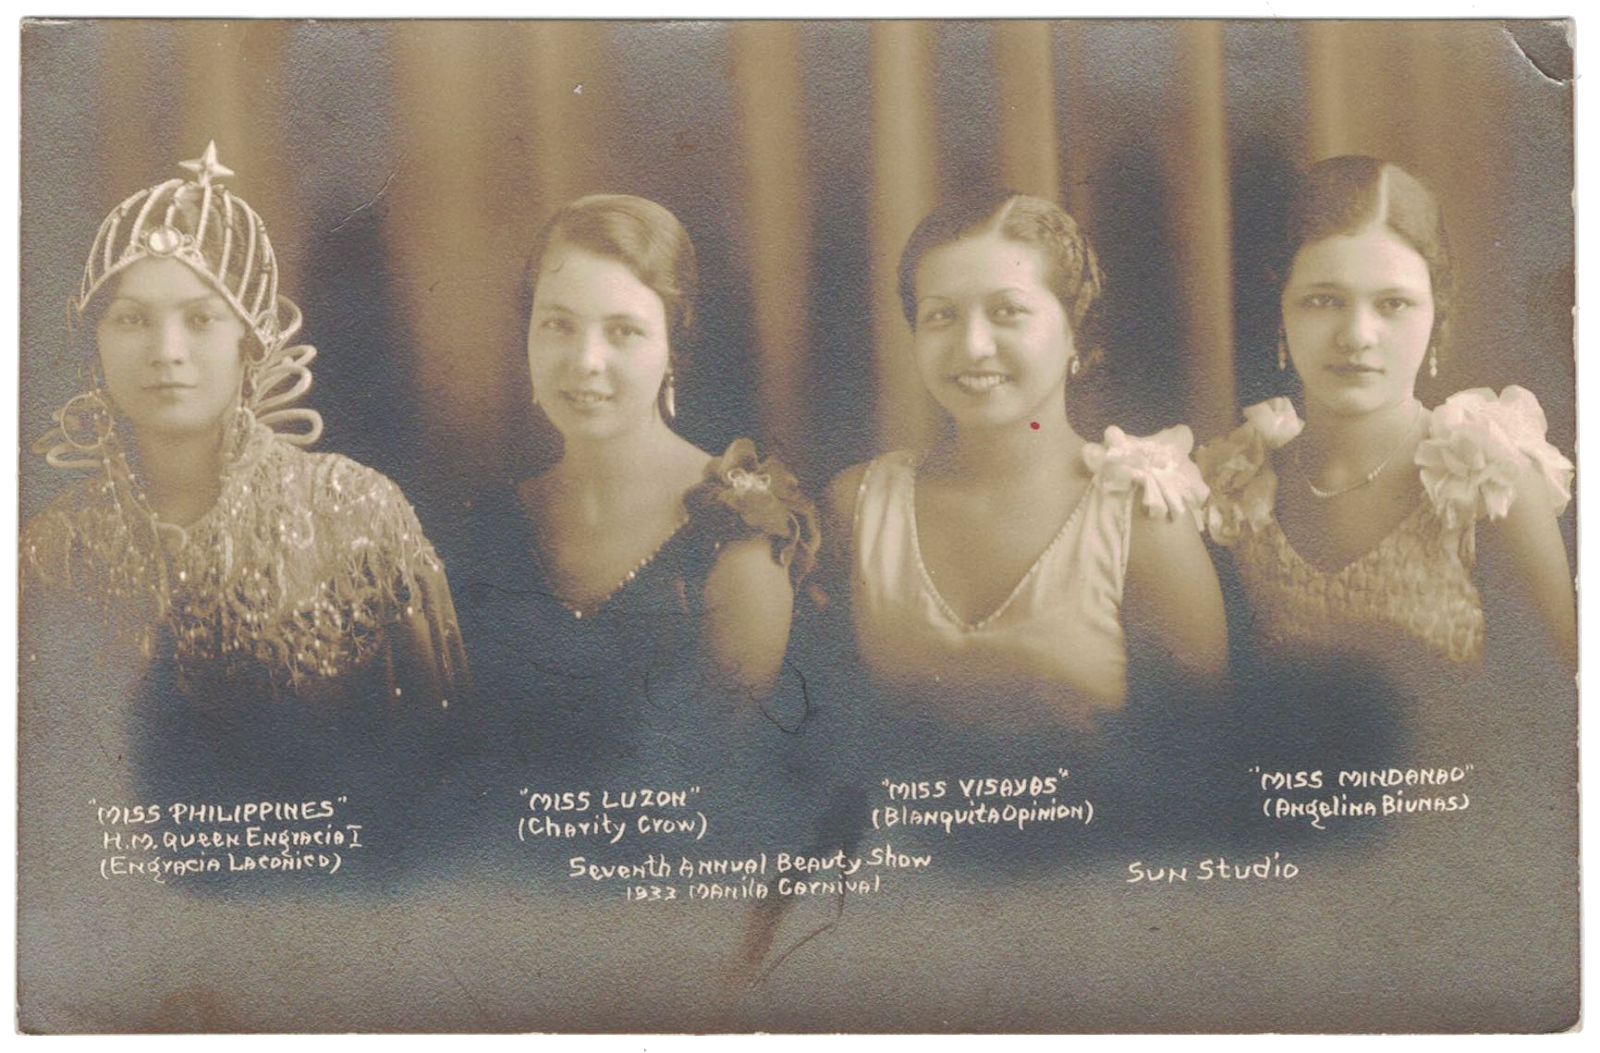 1933 Manila Carnival, the court of Queen Engracia I. From the collection of Mario Feir Filipiniana Library.